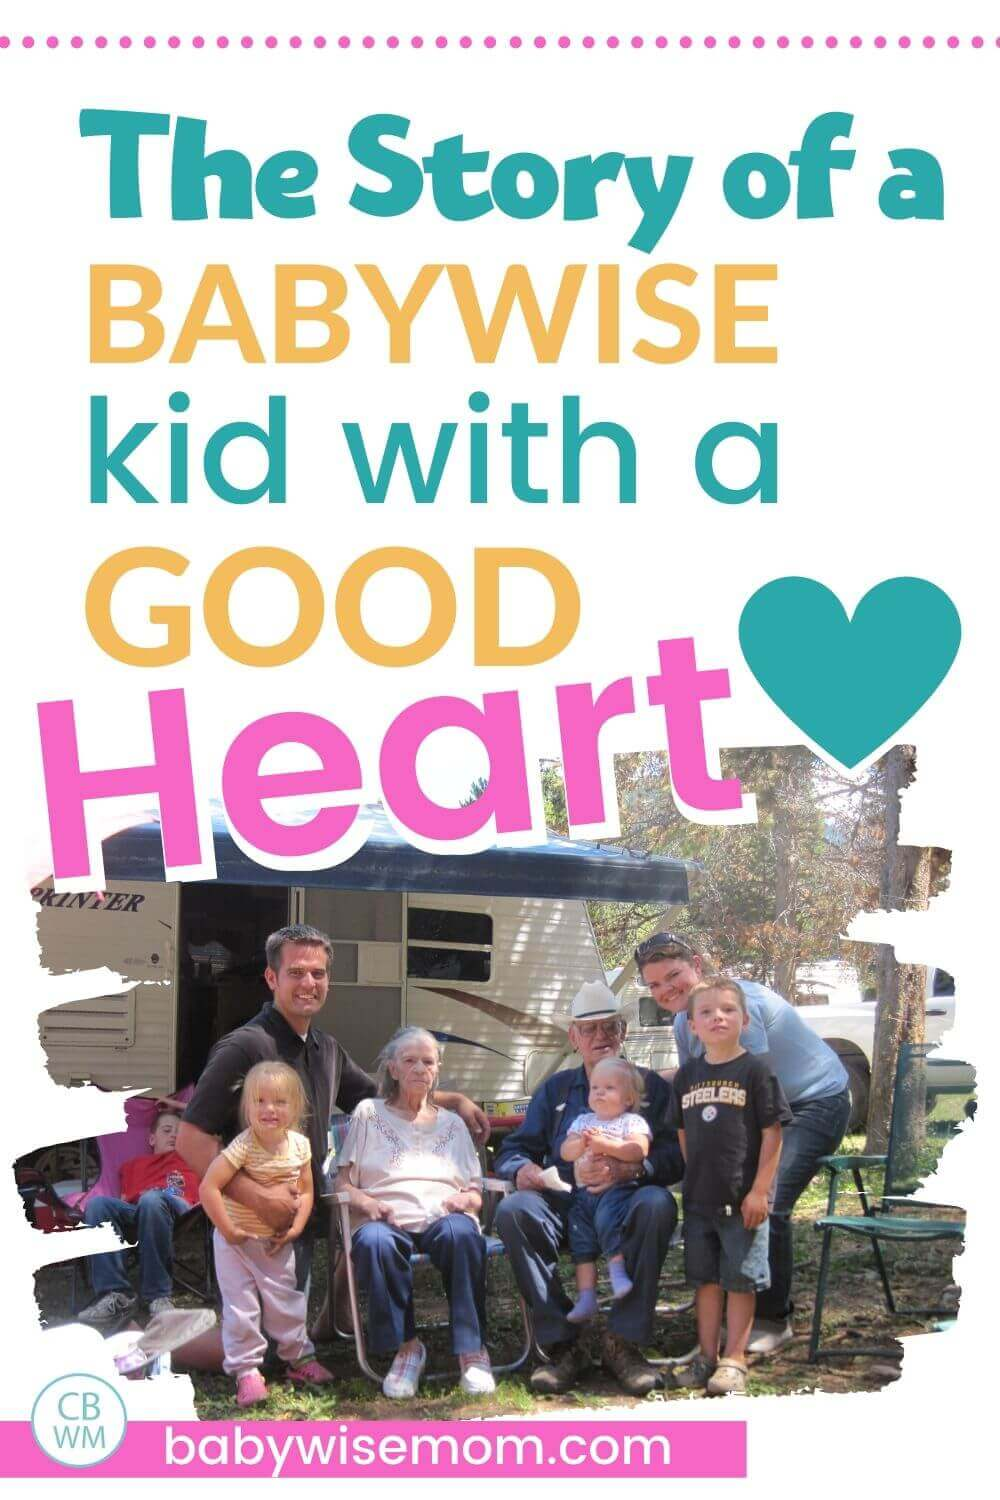 Babywise kid with a good heart